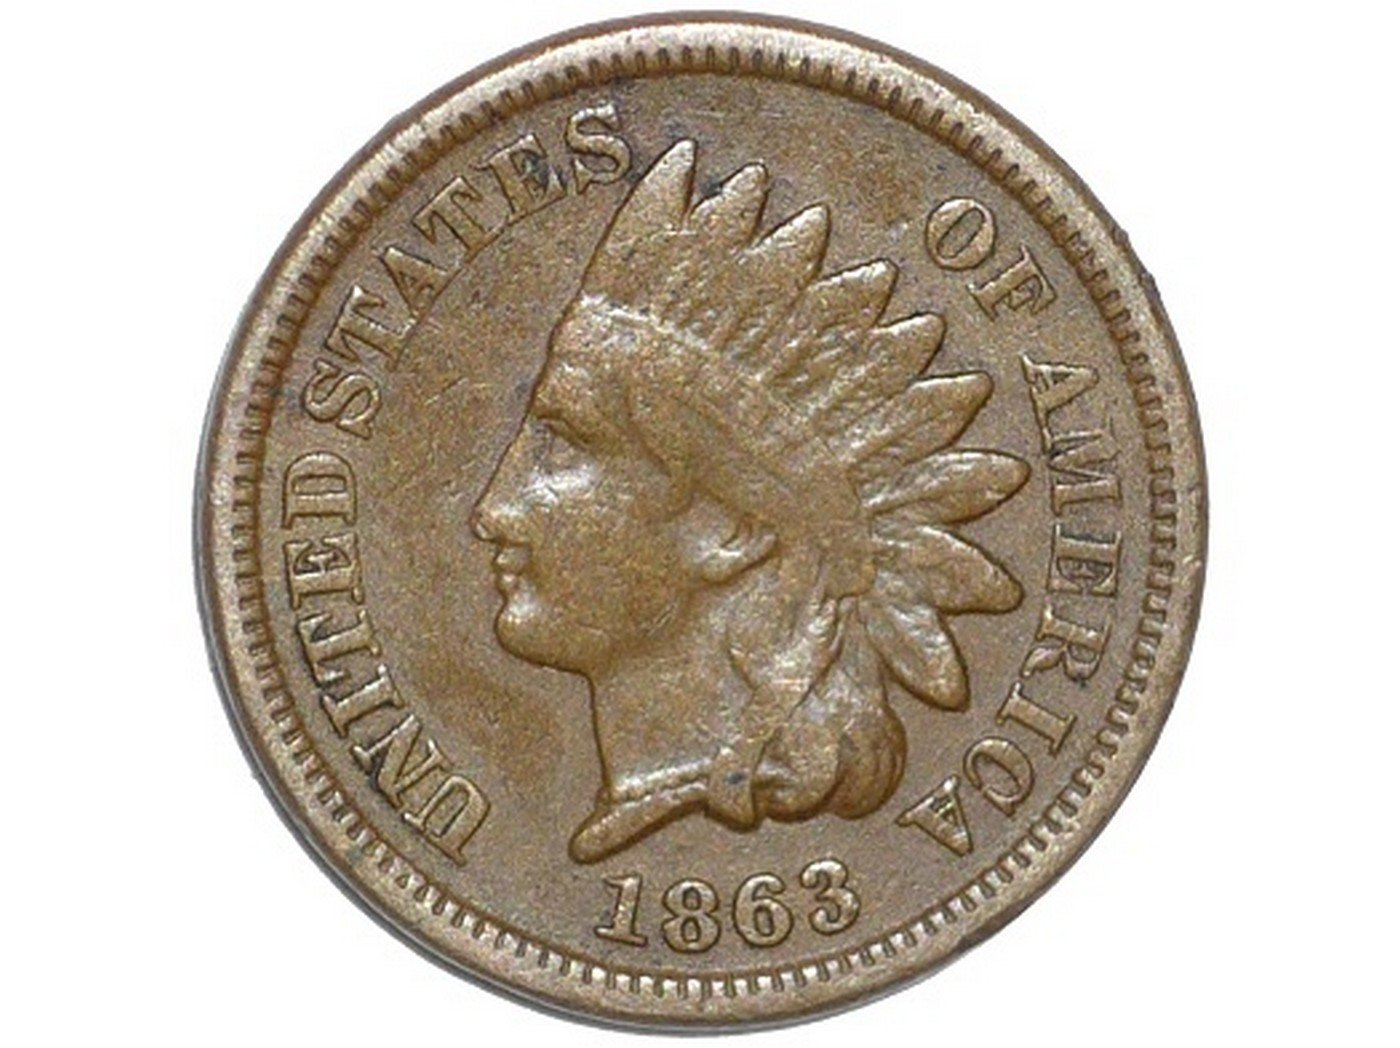 1863 Obverse of CUD-022 - Indian Head Penny - Photo by David Poliquin